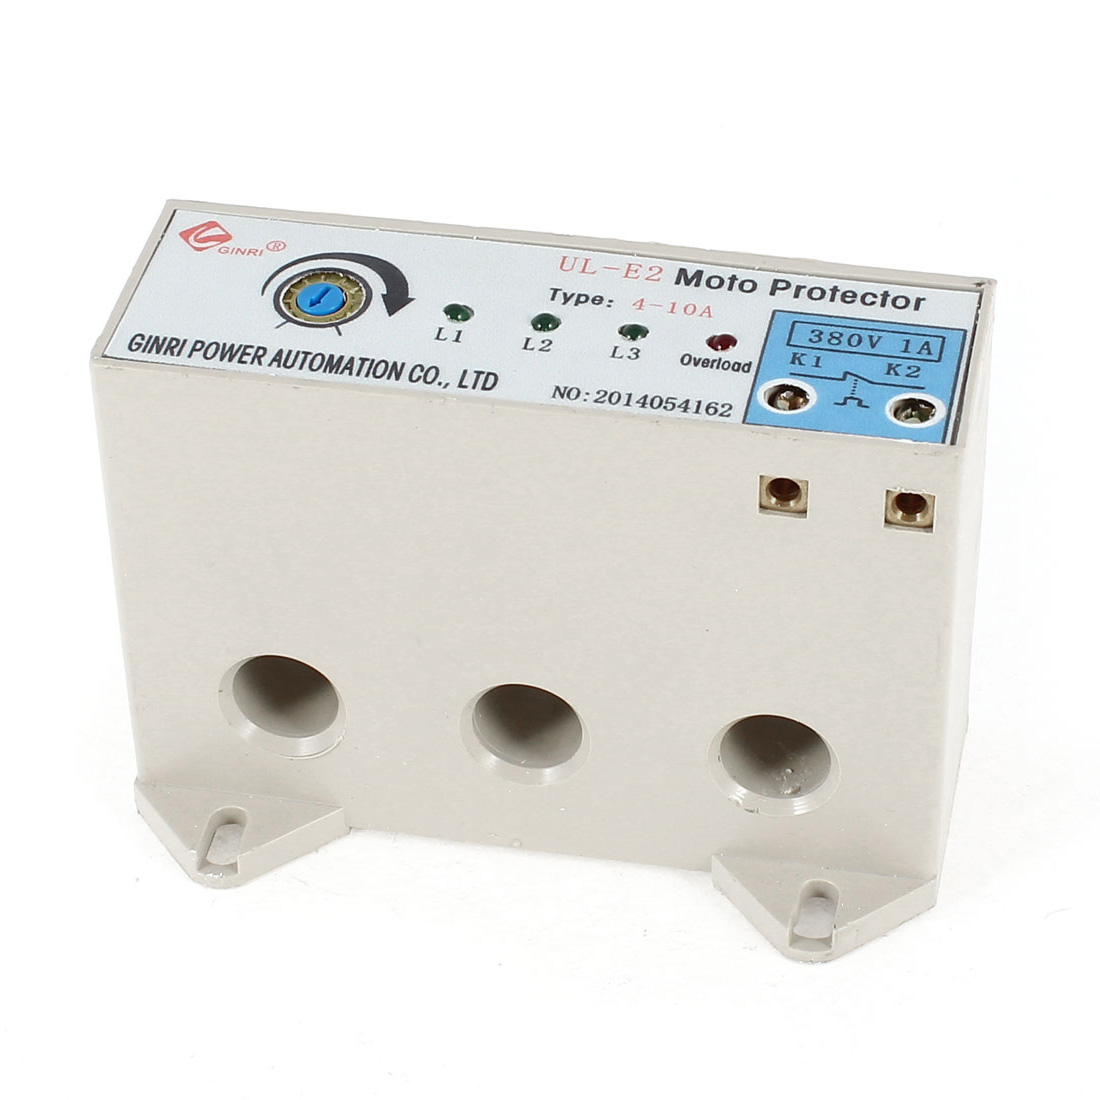 UL-E2/4-10A 3 Phase 4-10 Ampere Adjustable Current Breaker Motor Circuit Protector Non Power